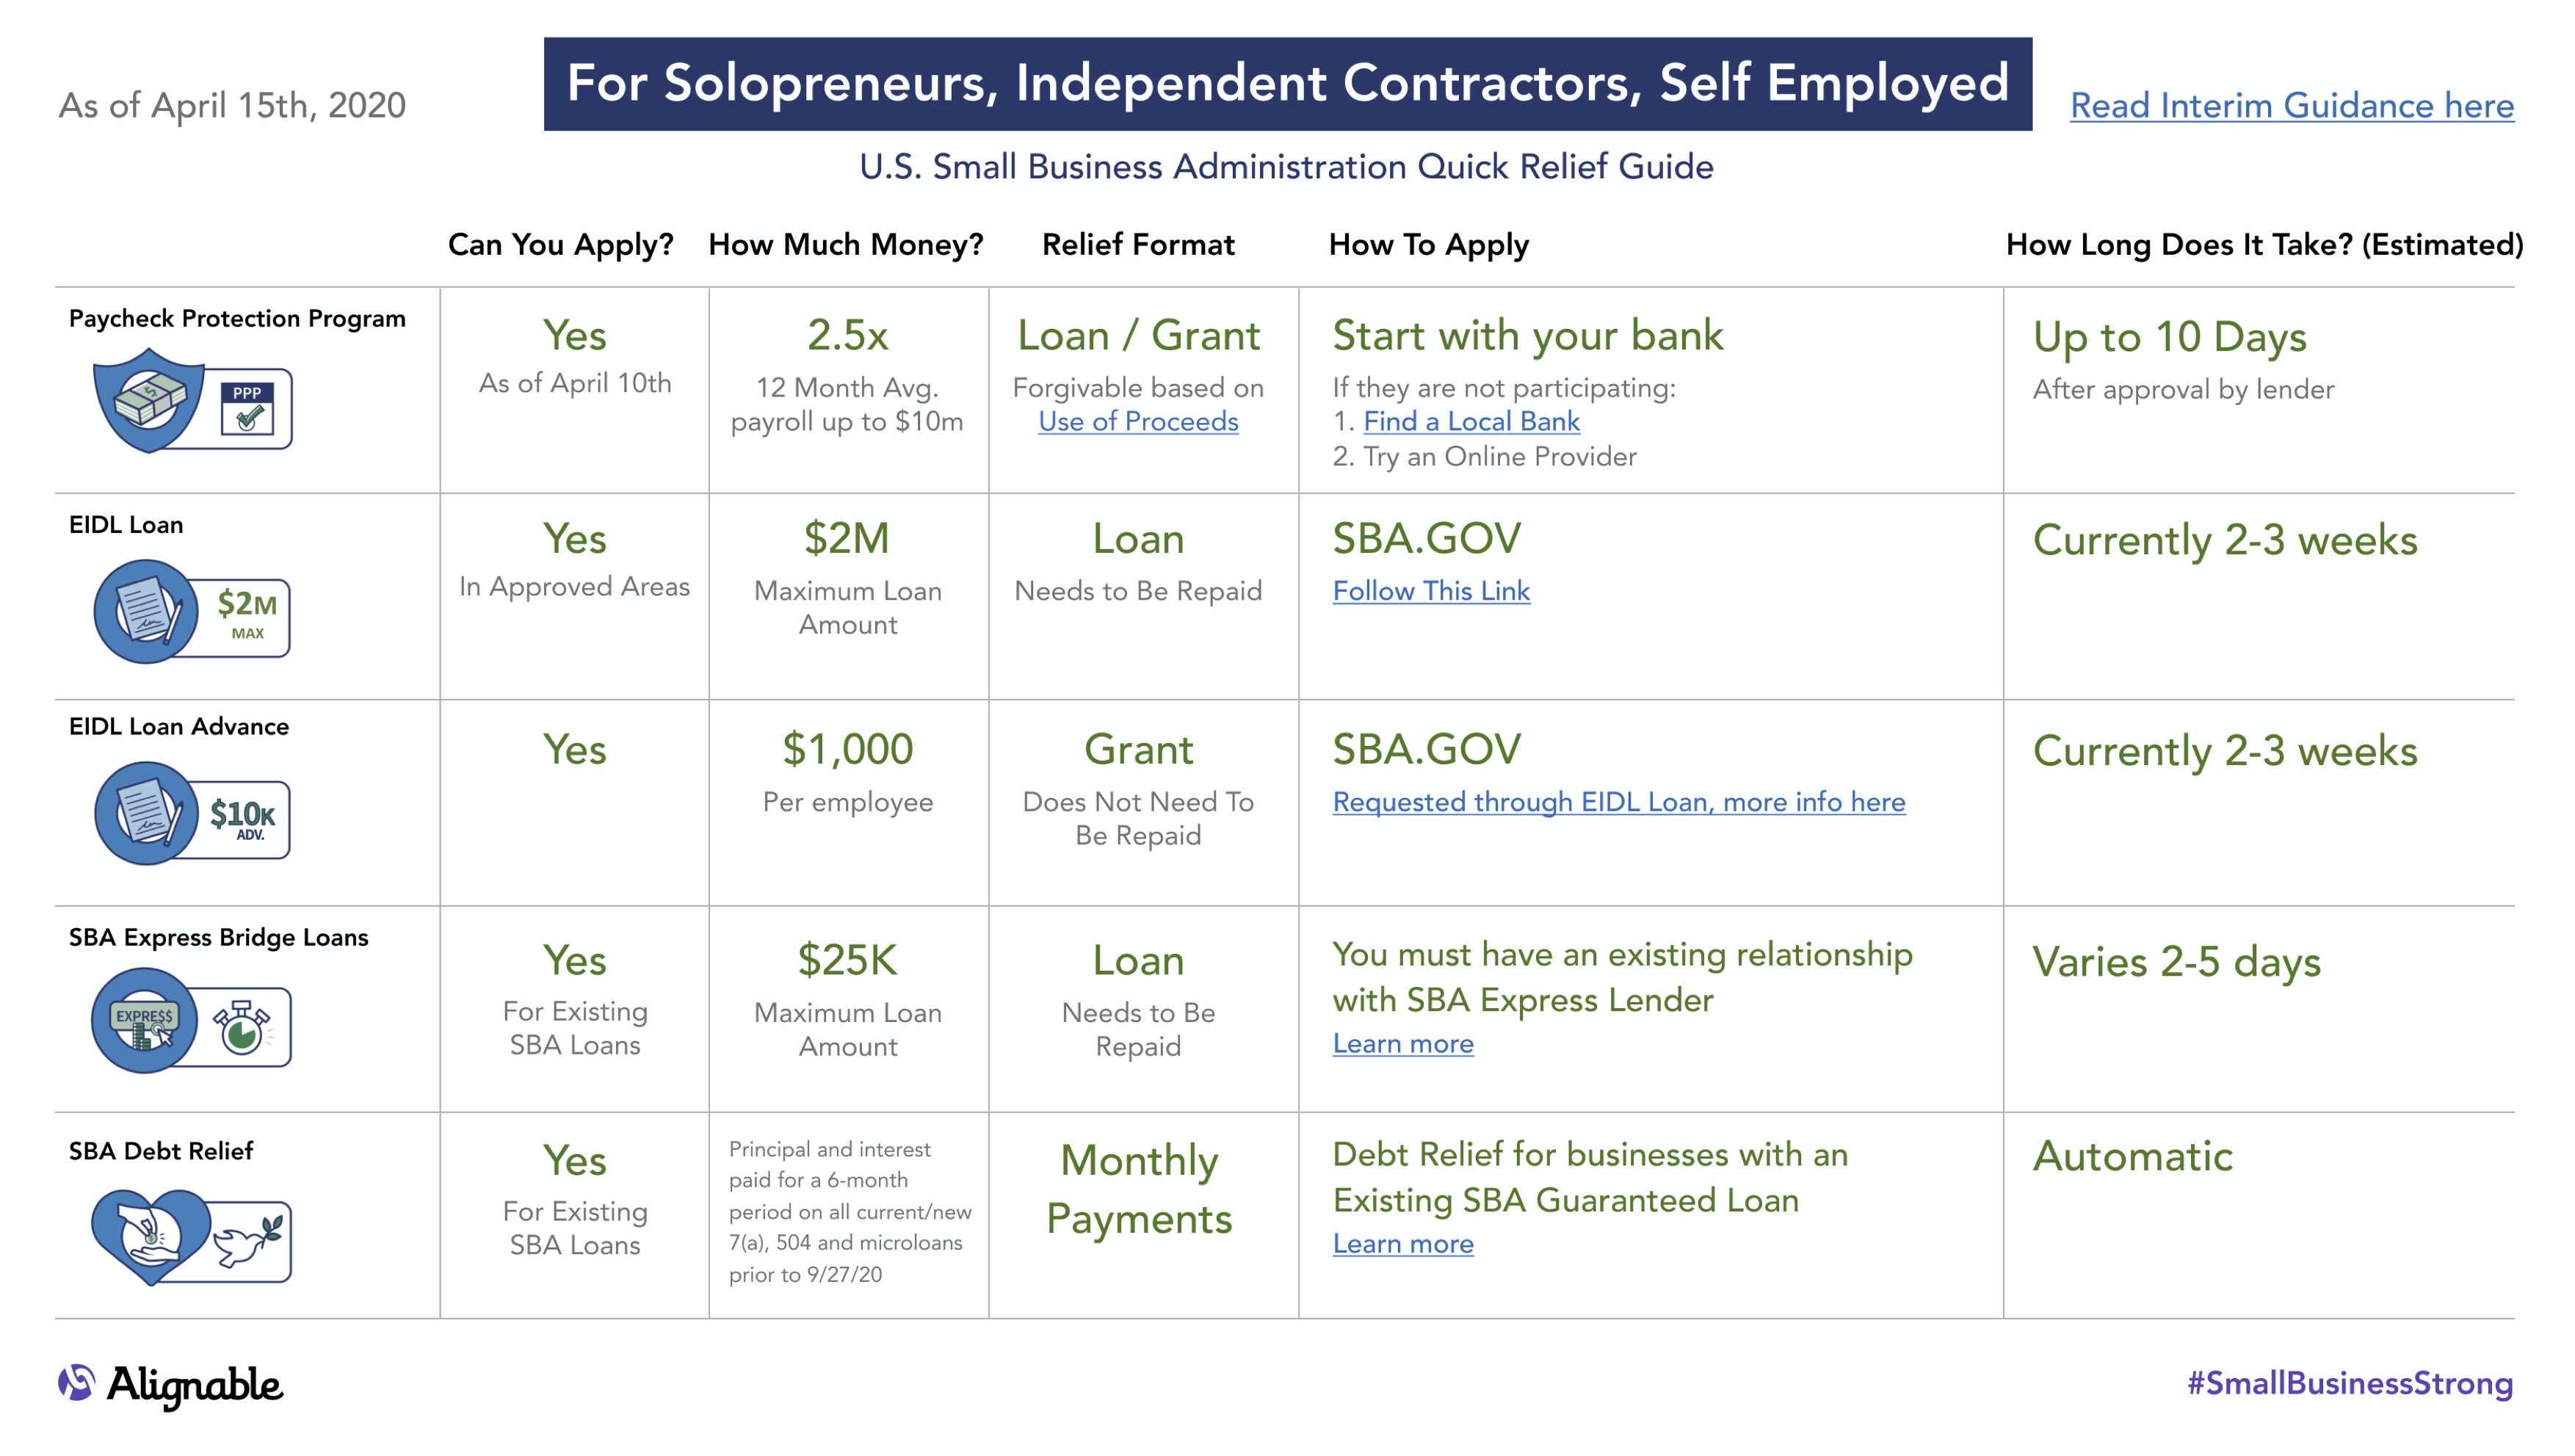 SBA Quick Relief Guide for Solopreneurs, Independent Contractors, and Self-Employed